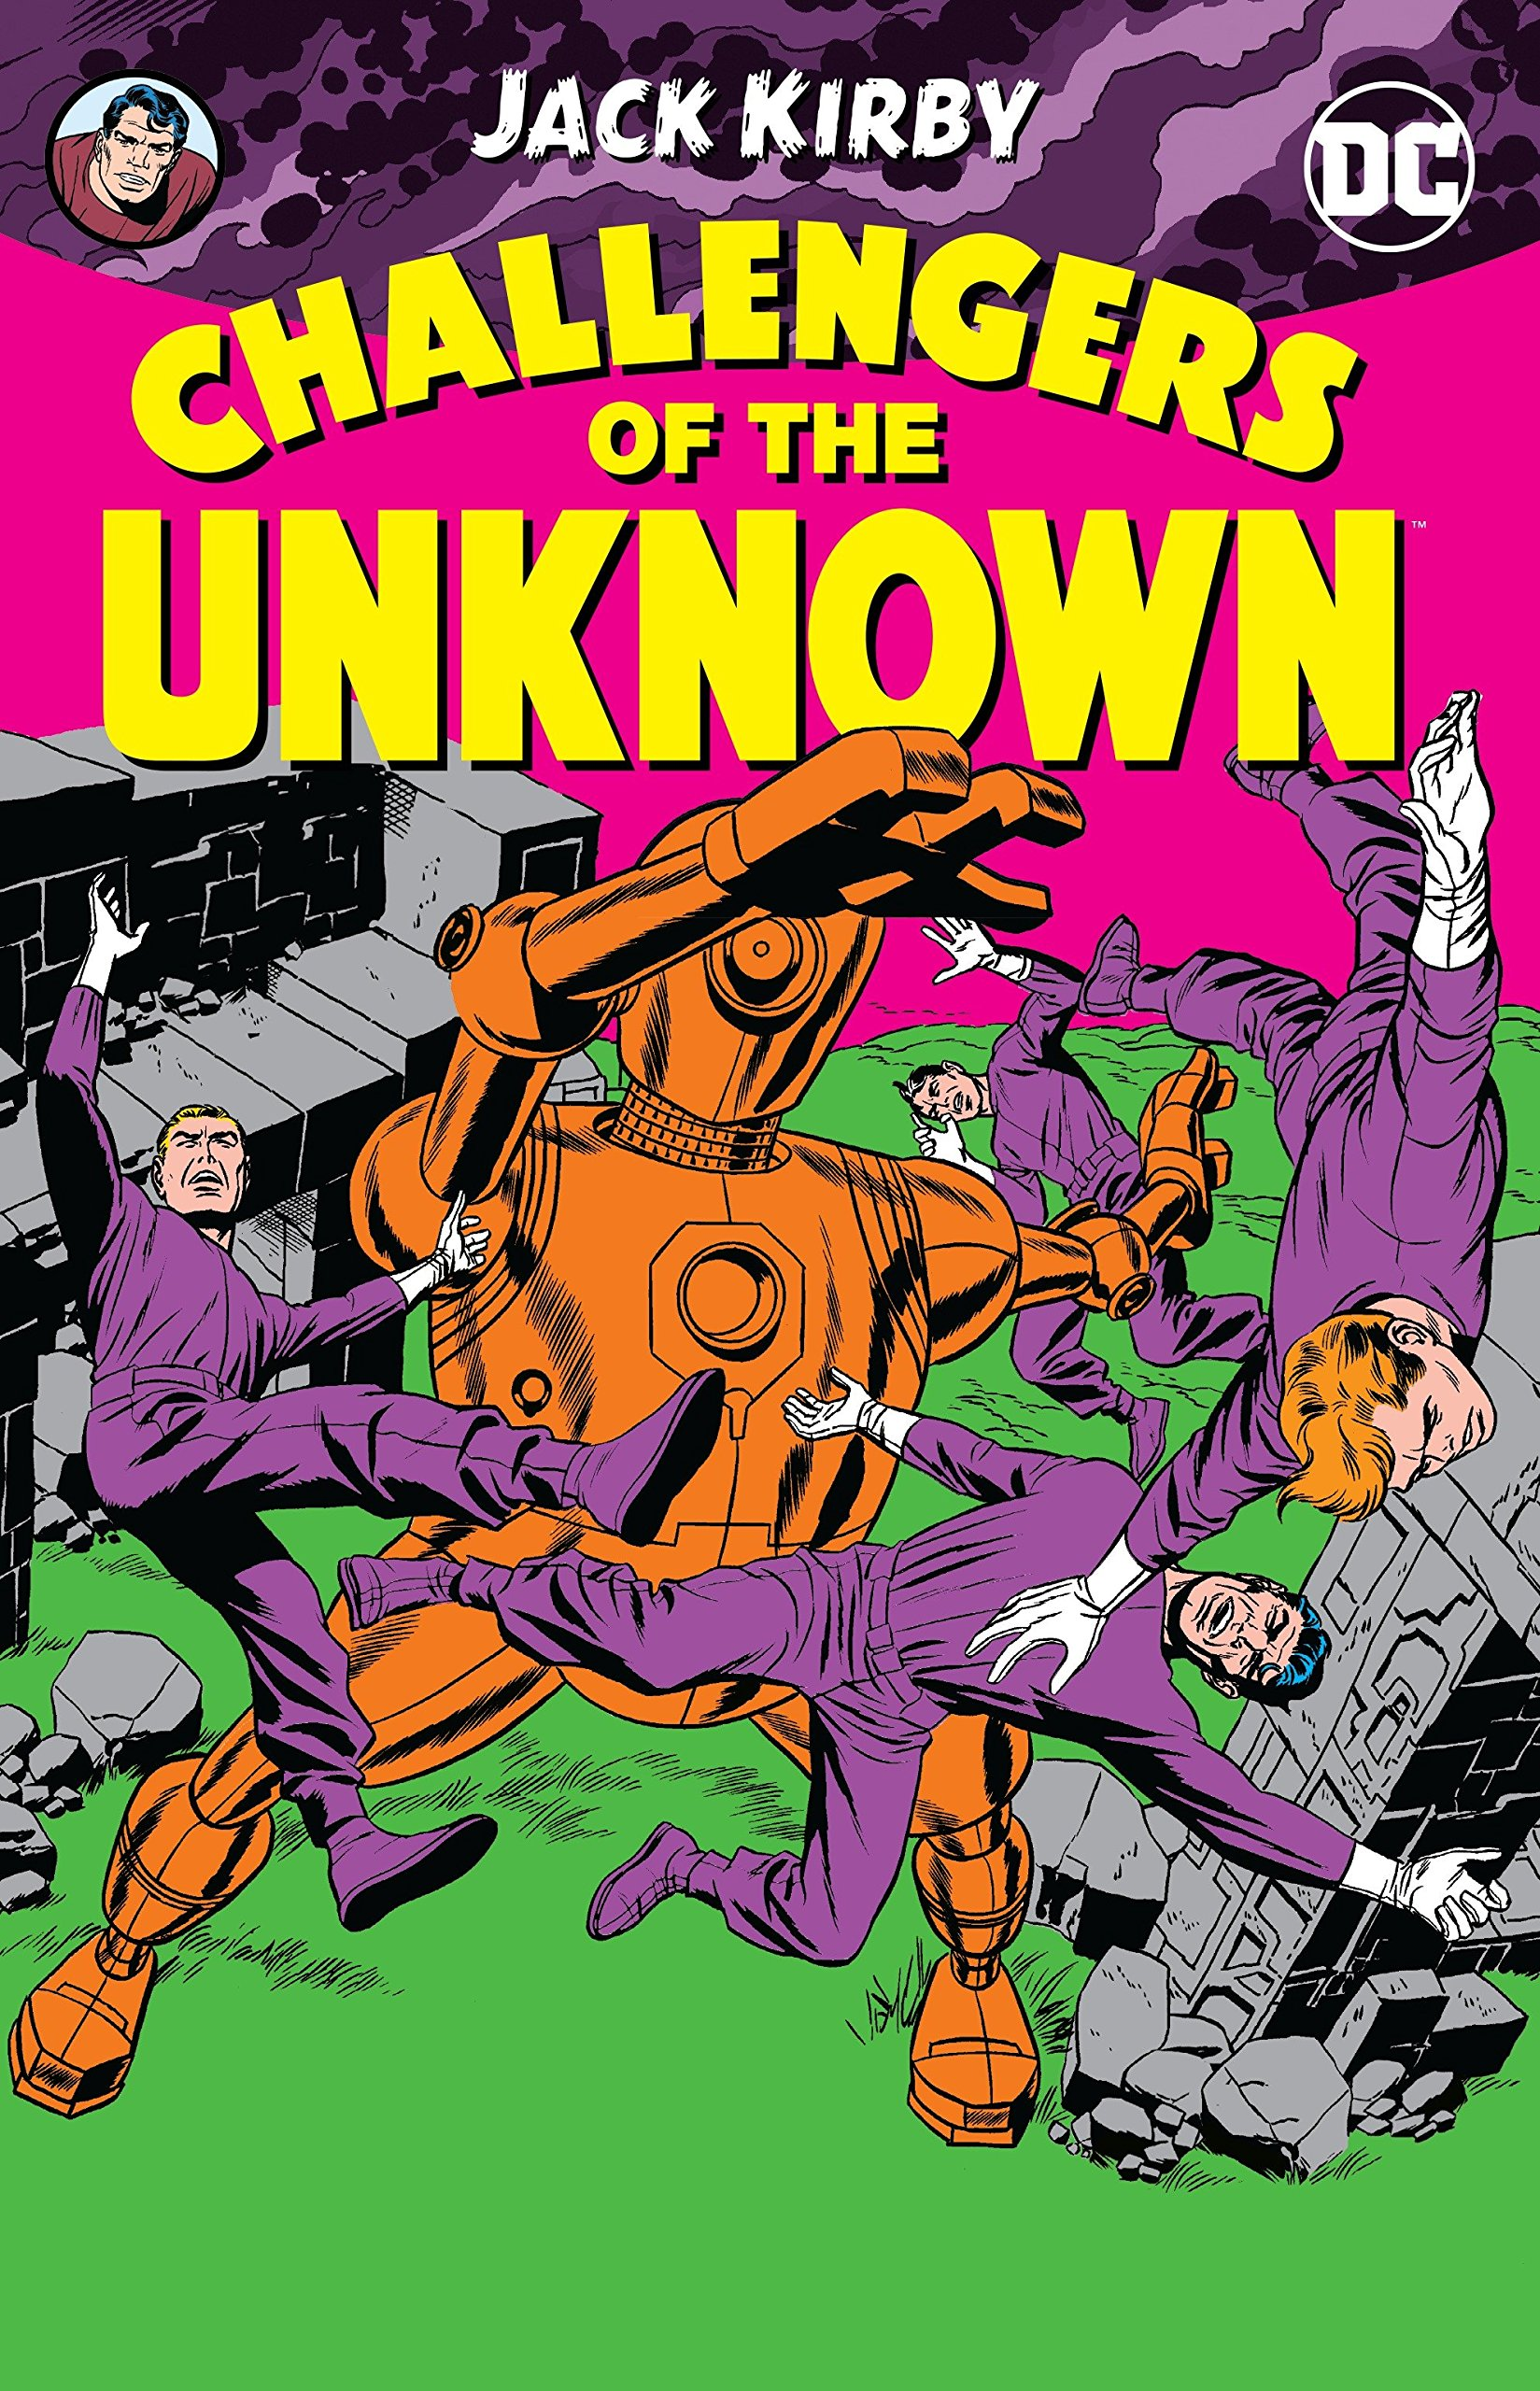 Download Challengers of the Unknown by Jack Kirby ebook